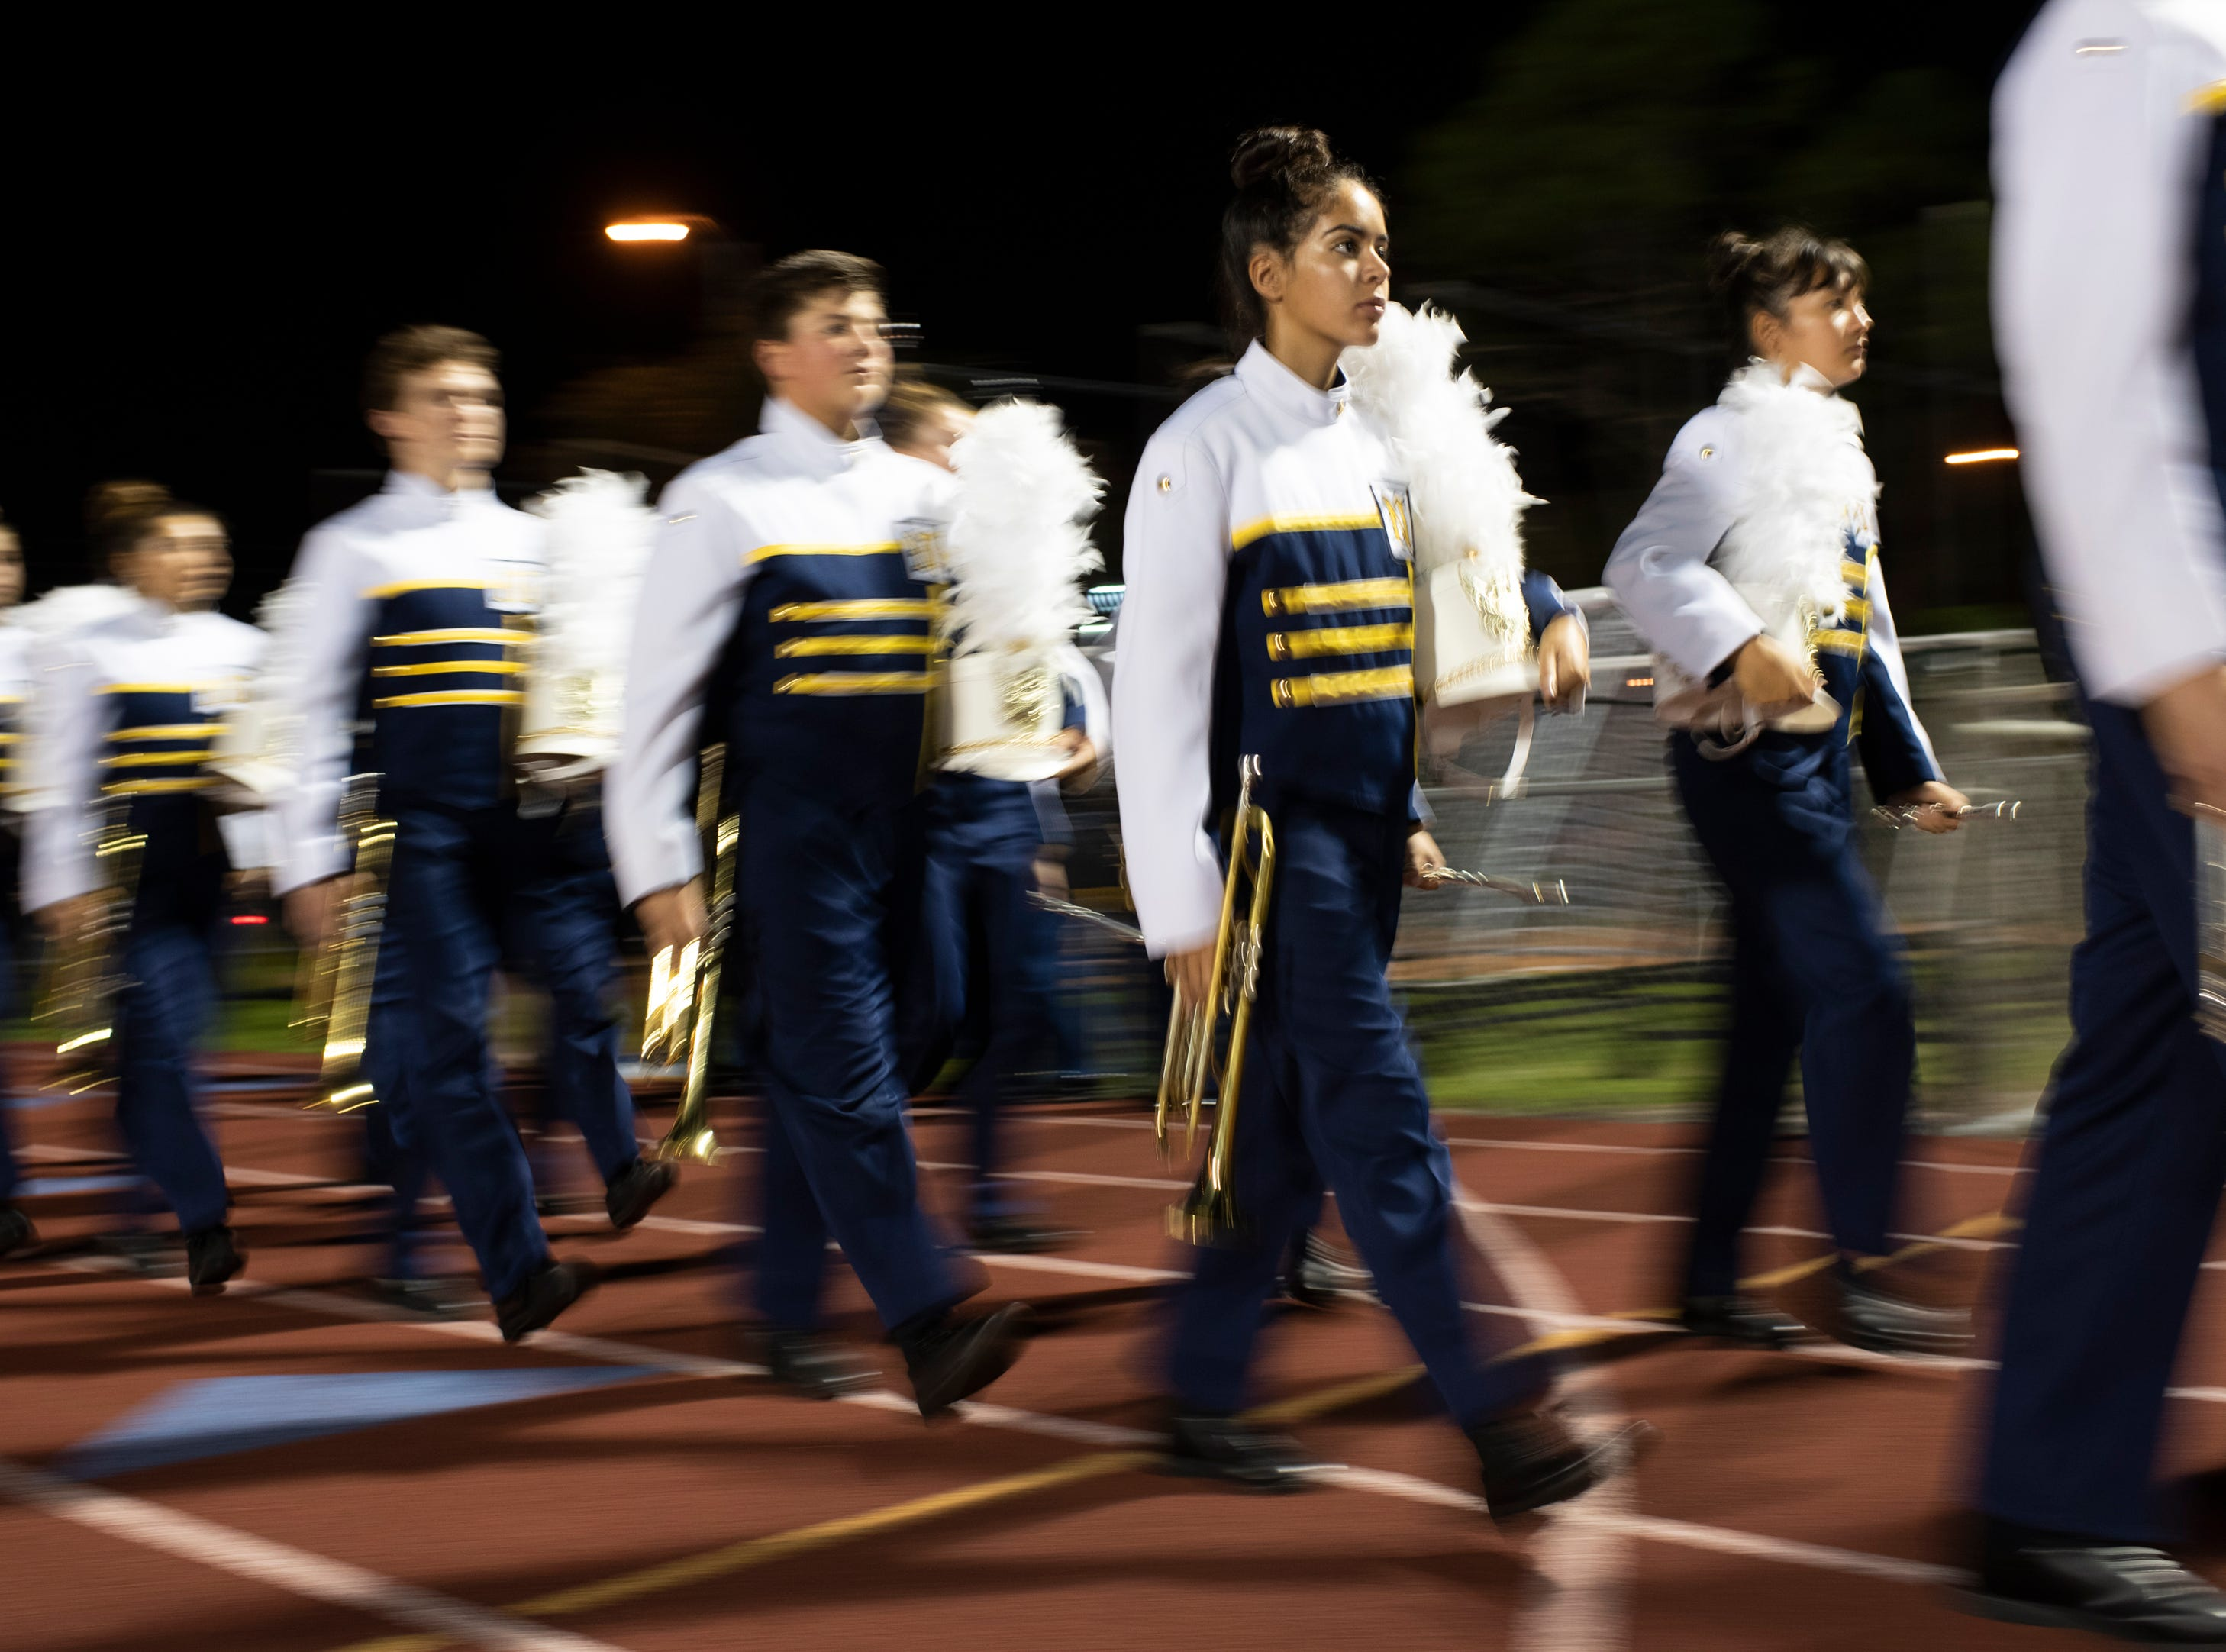 The Naples High marching band marches onto the field before the Class 6A regional quarterfinal playoff game against Lehigh at Naples High on Friday night, November 9, 2018.